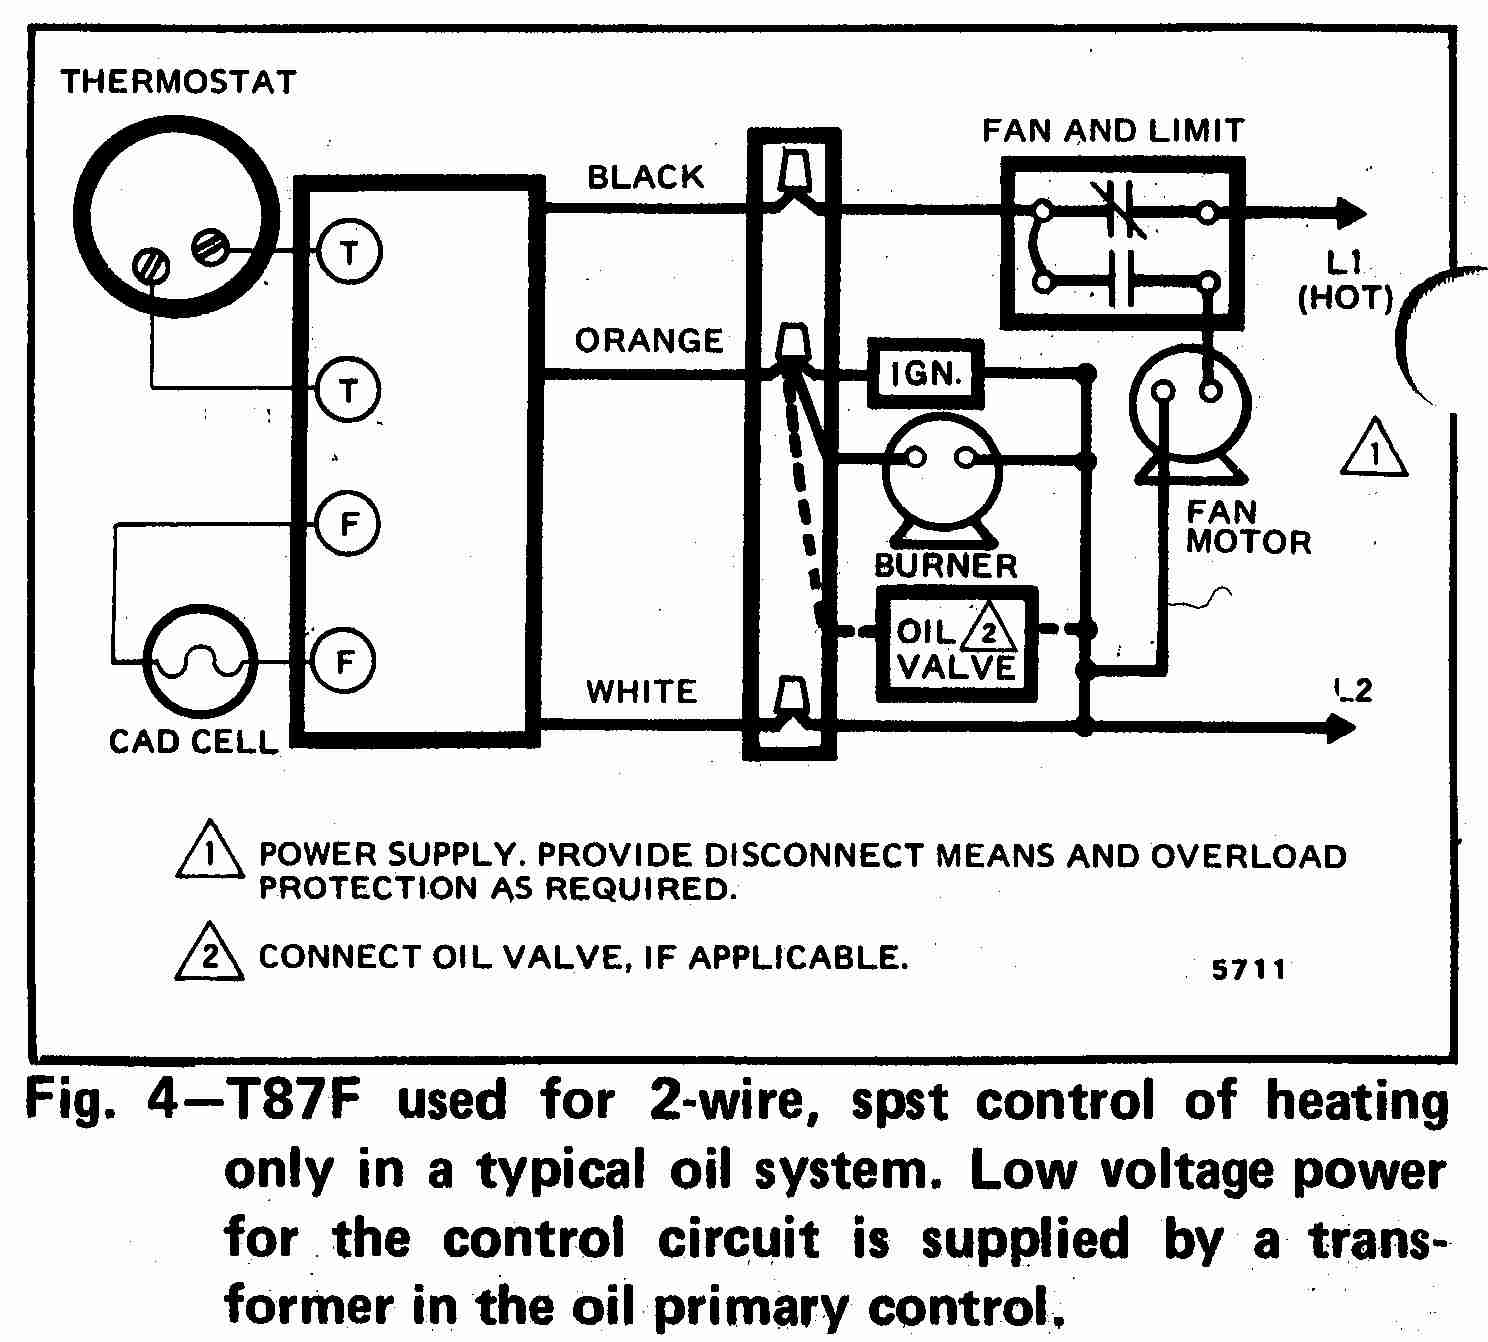 TT_T87F_0002_2W_DJF room thermostat wiring diagrams for hvac systems wiring diagram for central air conditioning at crackthecode.co